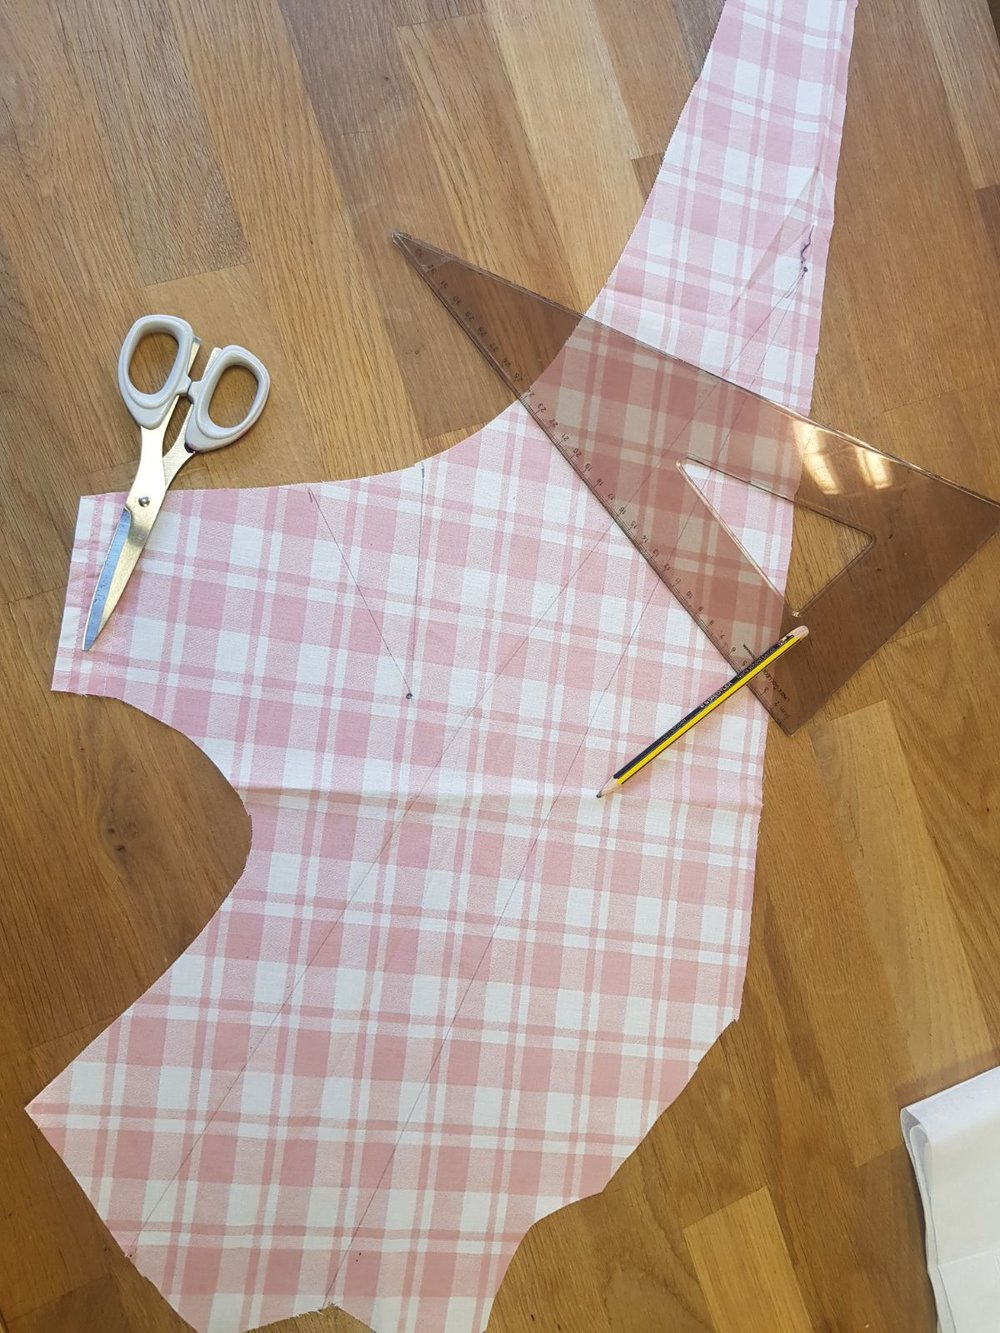 GCSE Pattern cutting.jpeg